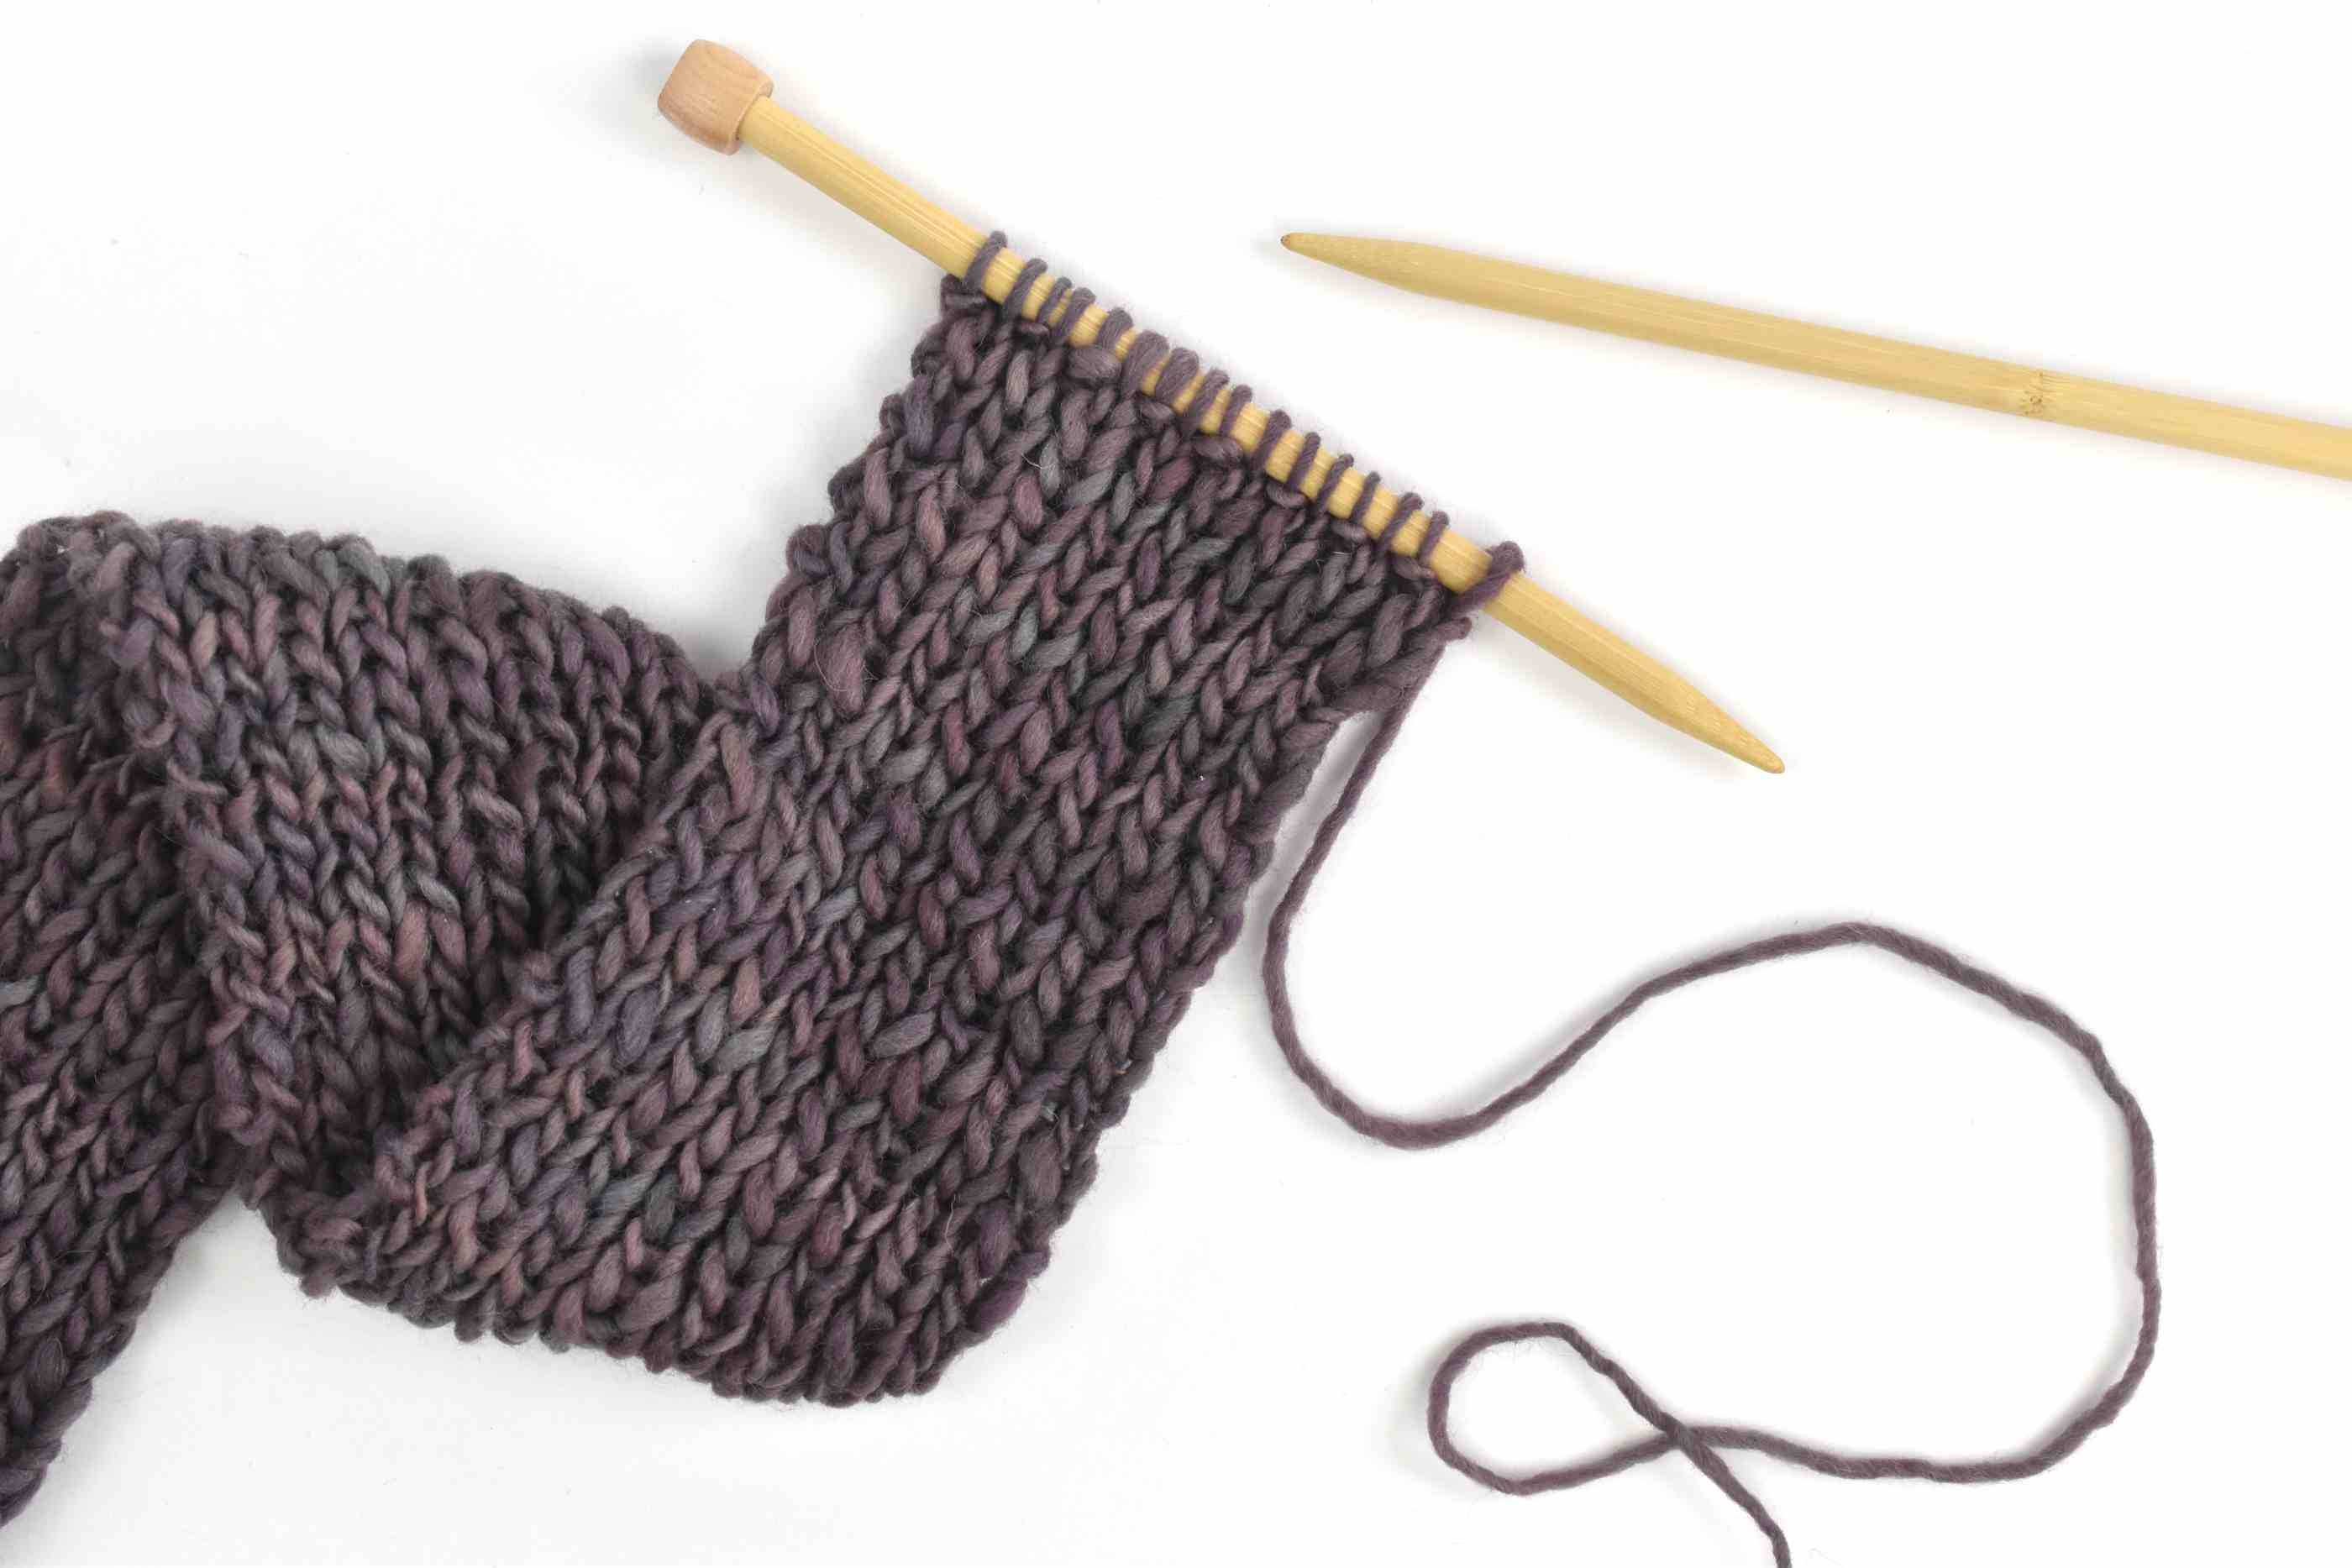 Scarf in-progress with knitting needles